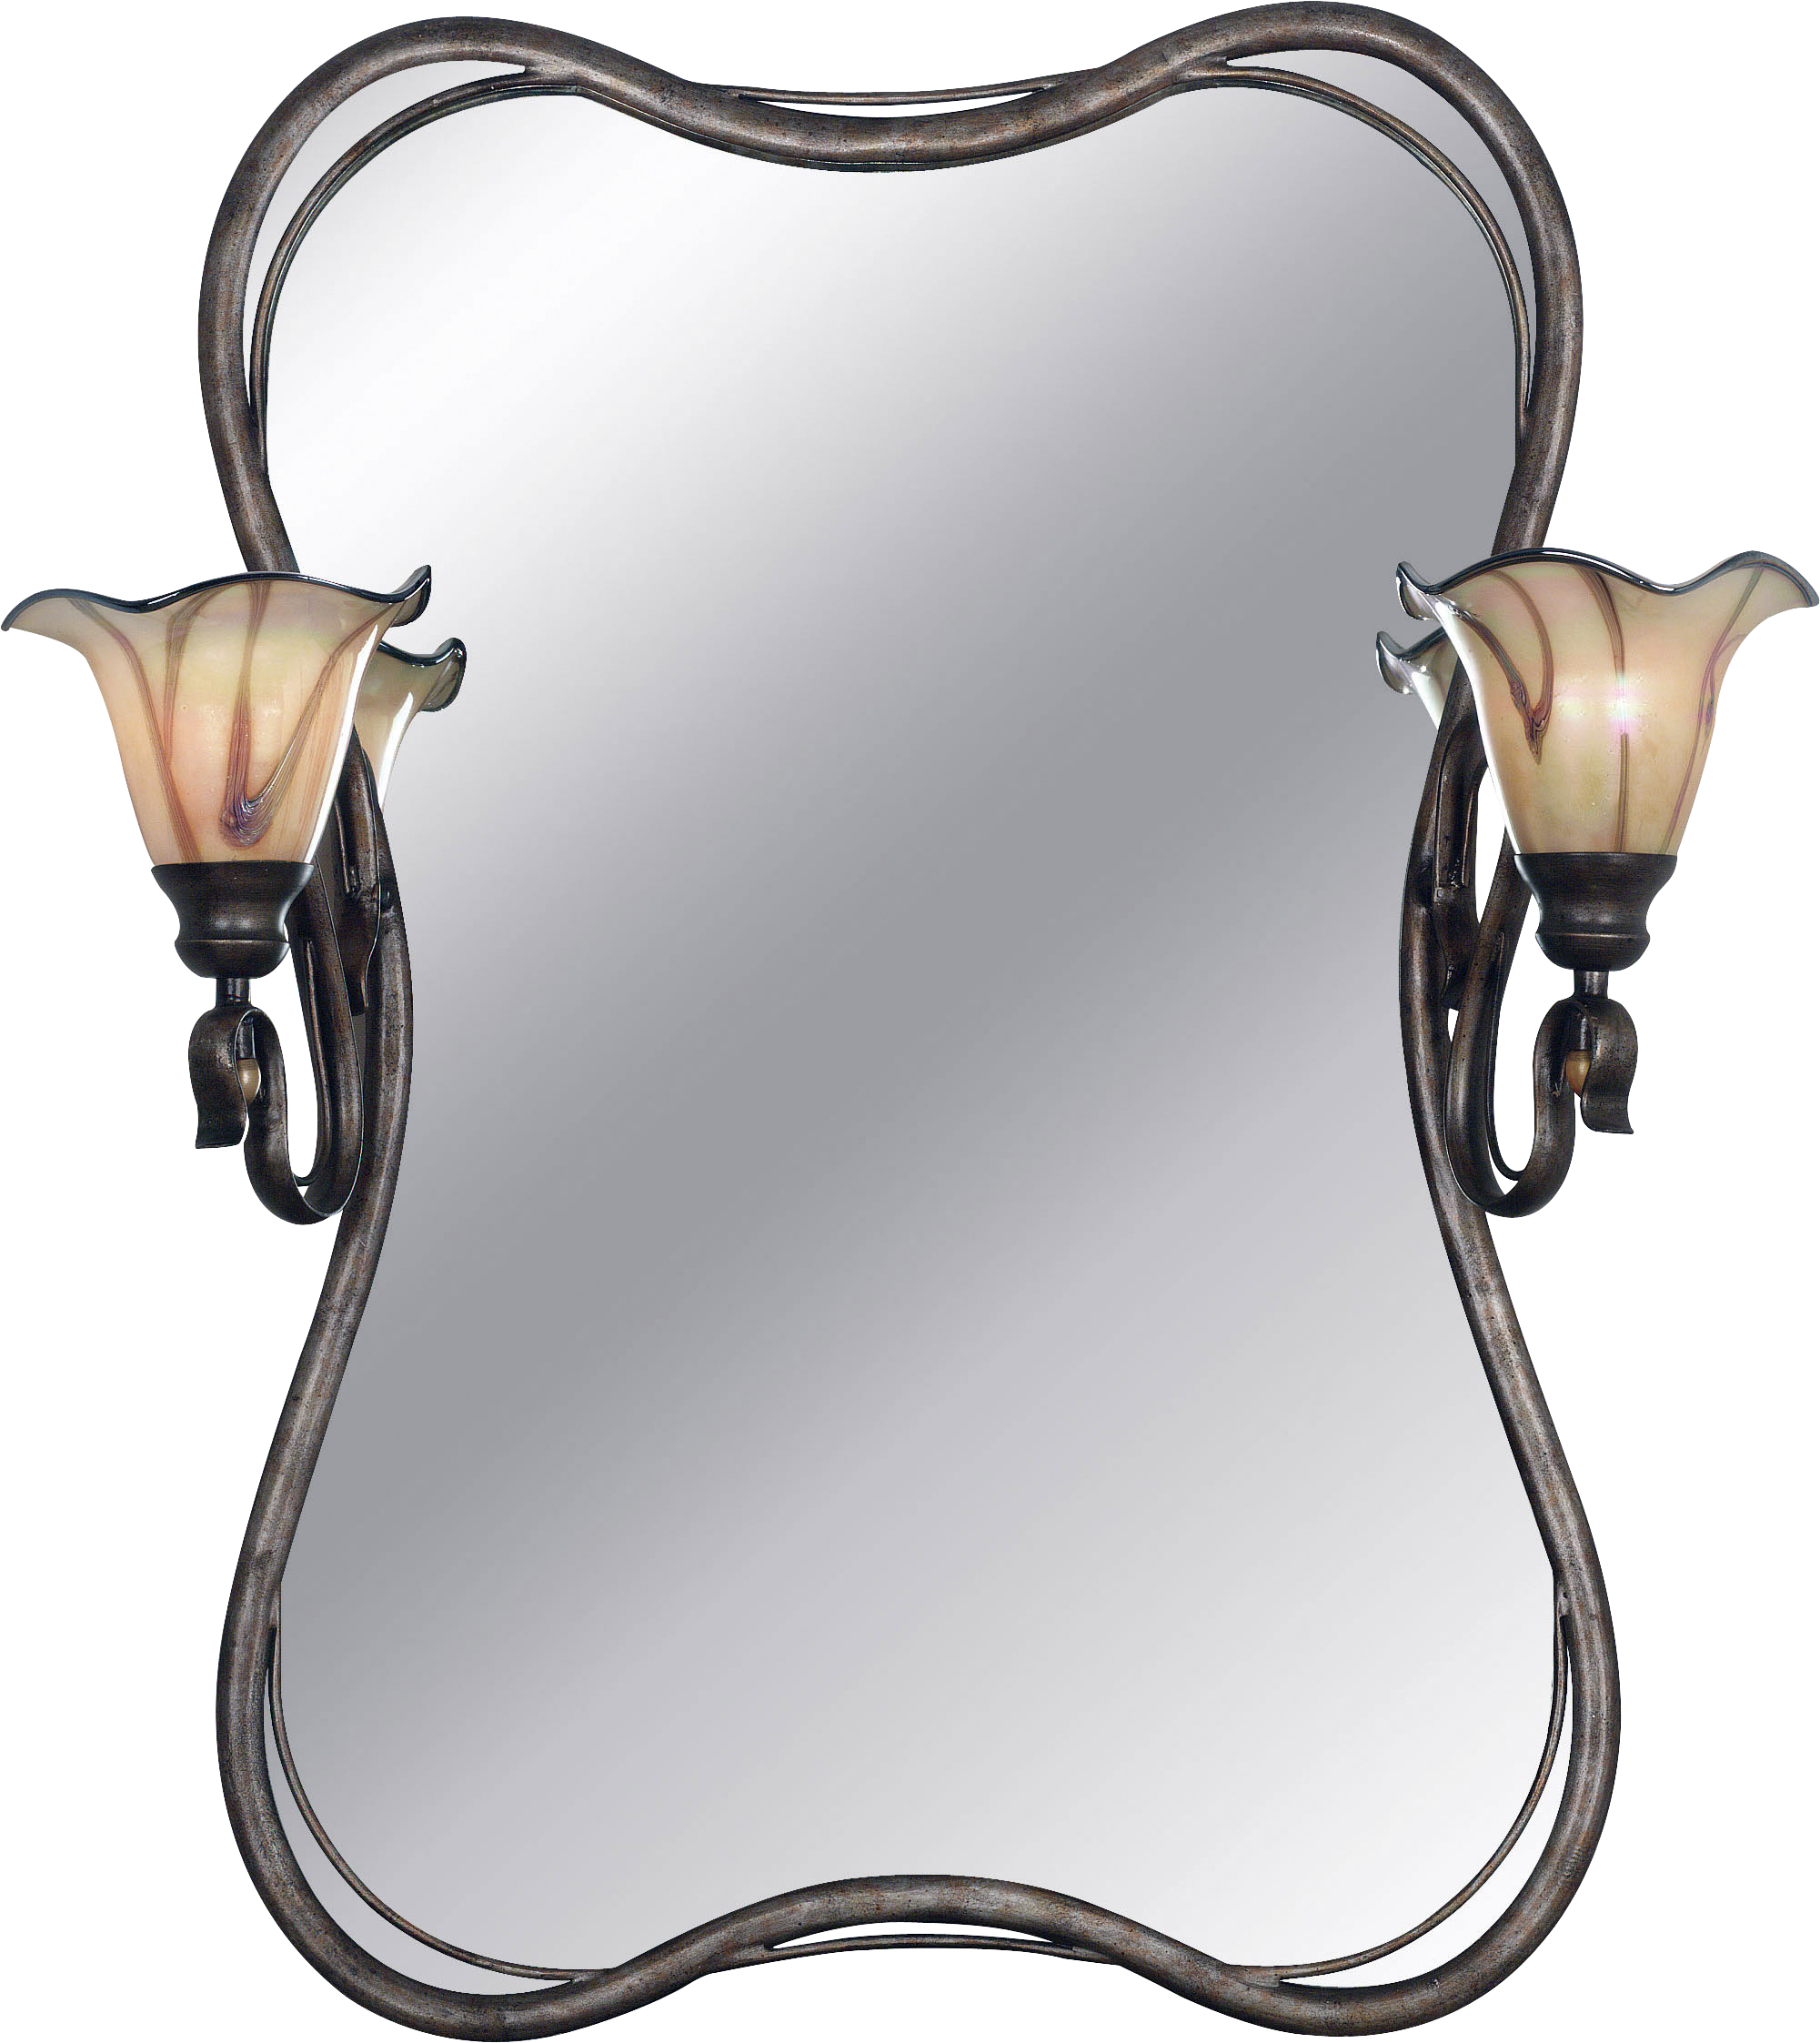 Mirror clipart hollywood. Png images free download